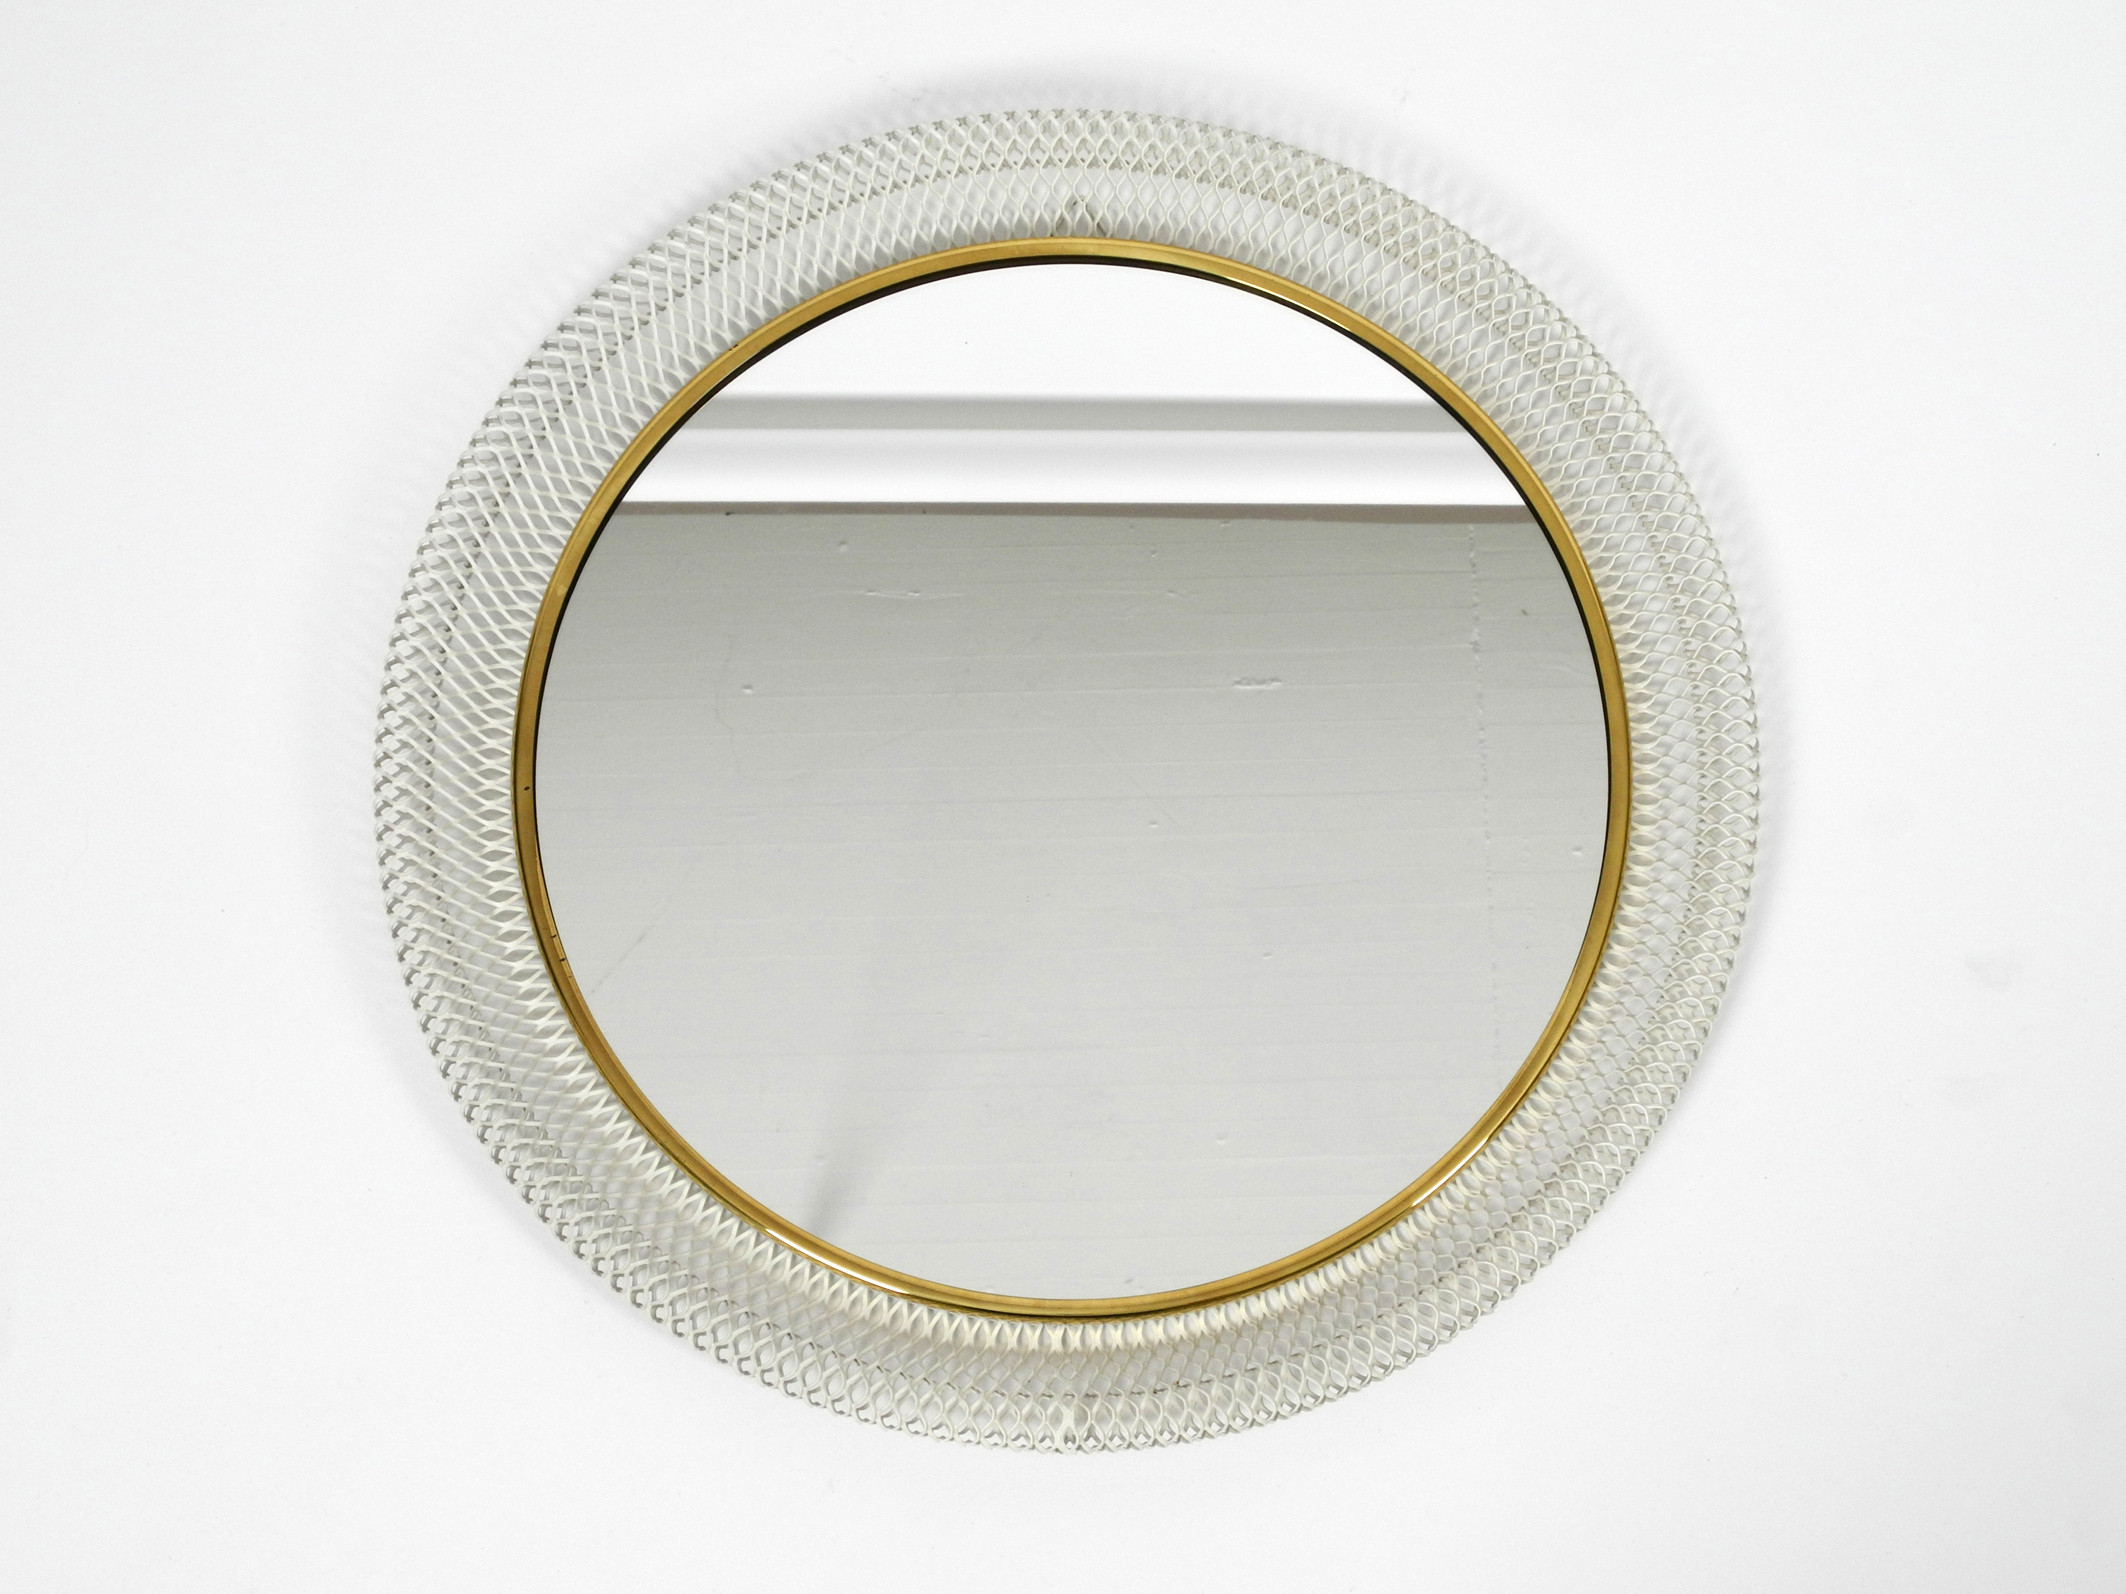 Best And Newest Very Nice Round Xl Mid Century Modern Wall Mirror With White Metal Frame In Mid Century Modern Wall Mirrors (View 17 of 20)